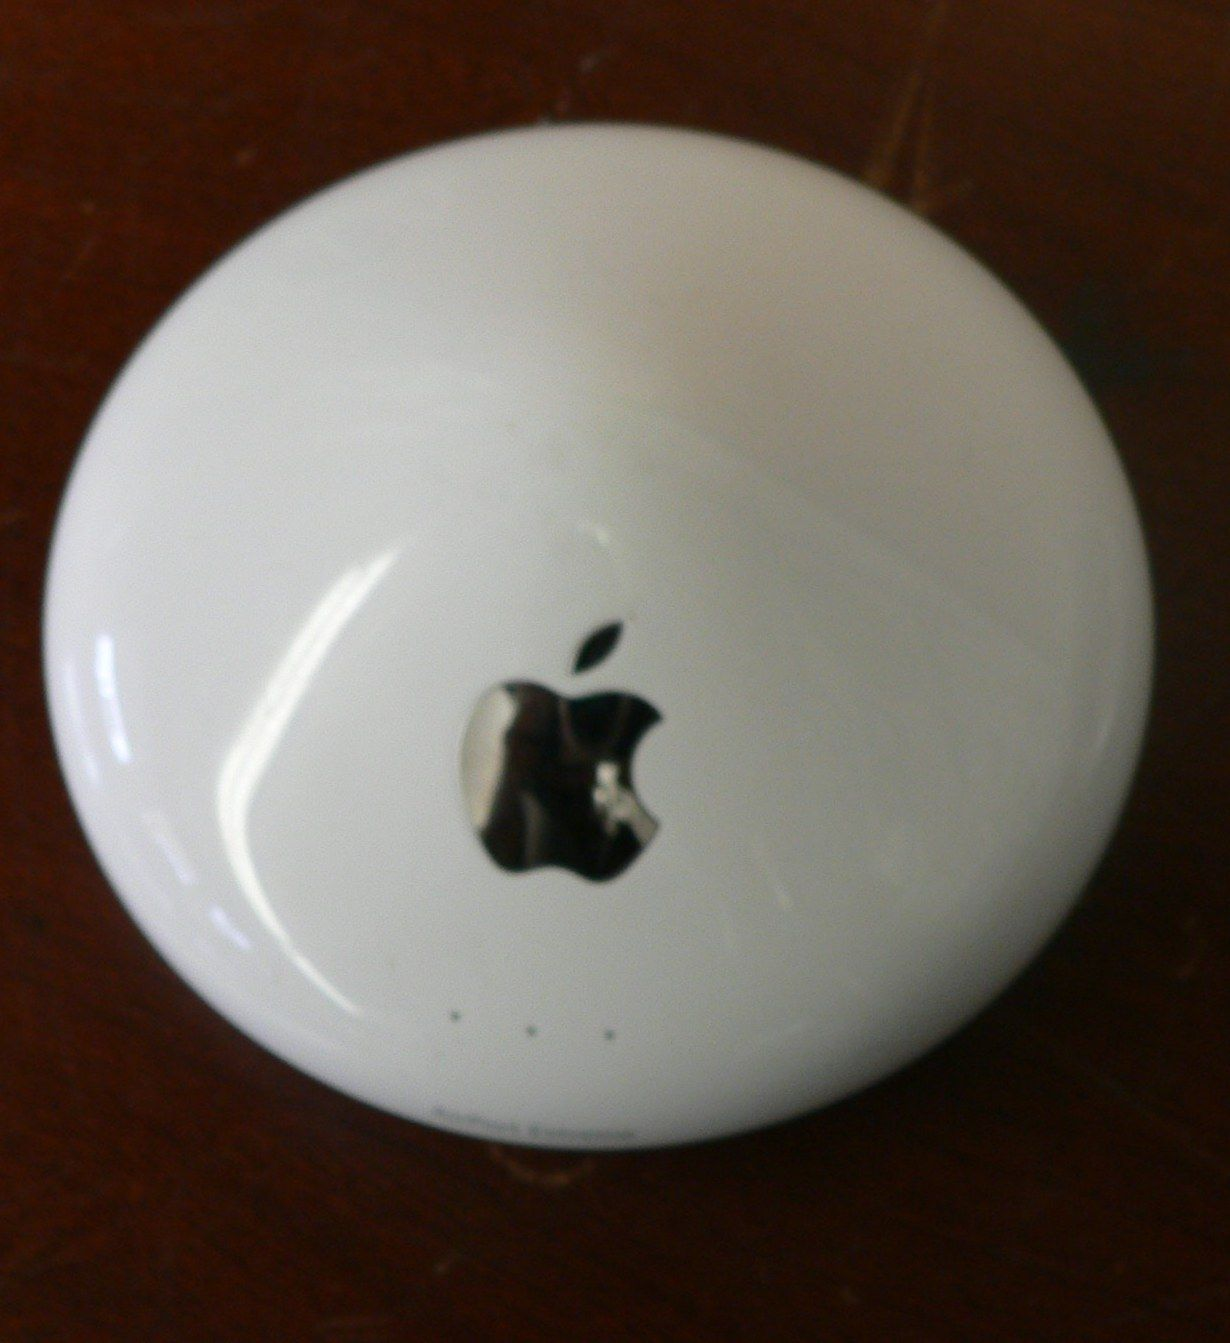 Apple Airport Extreme A1034